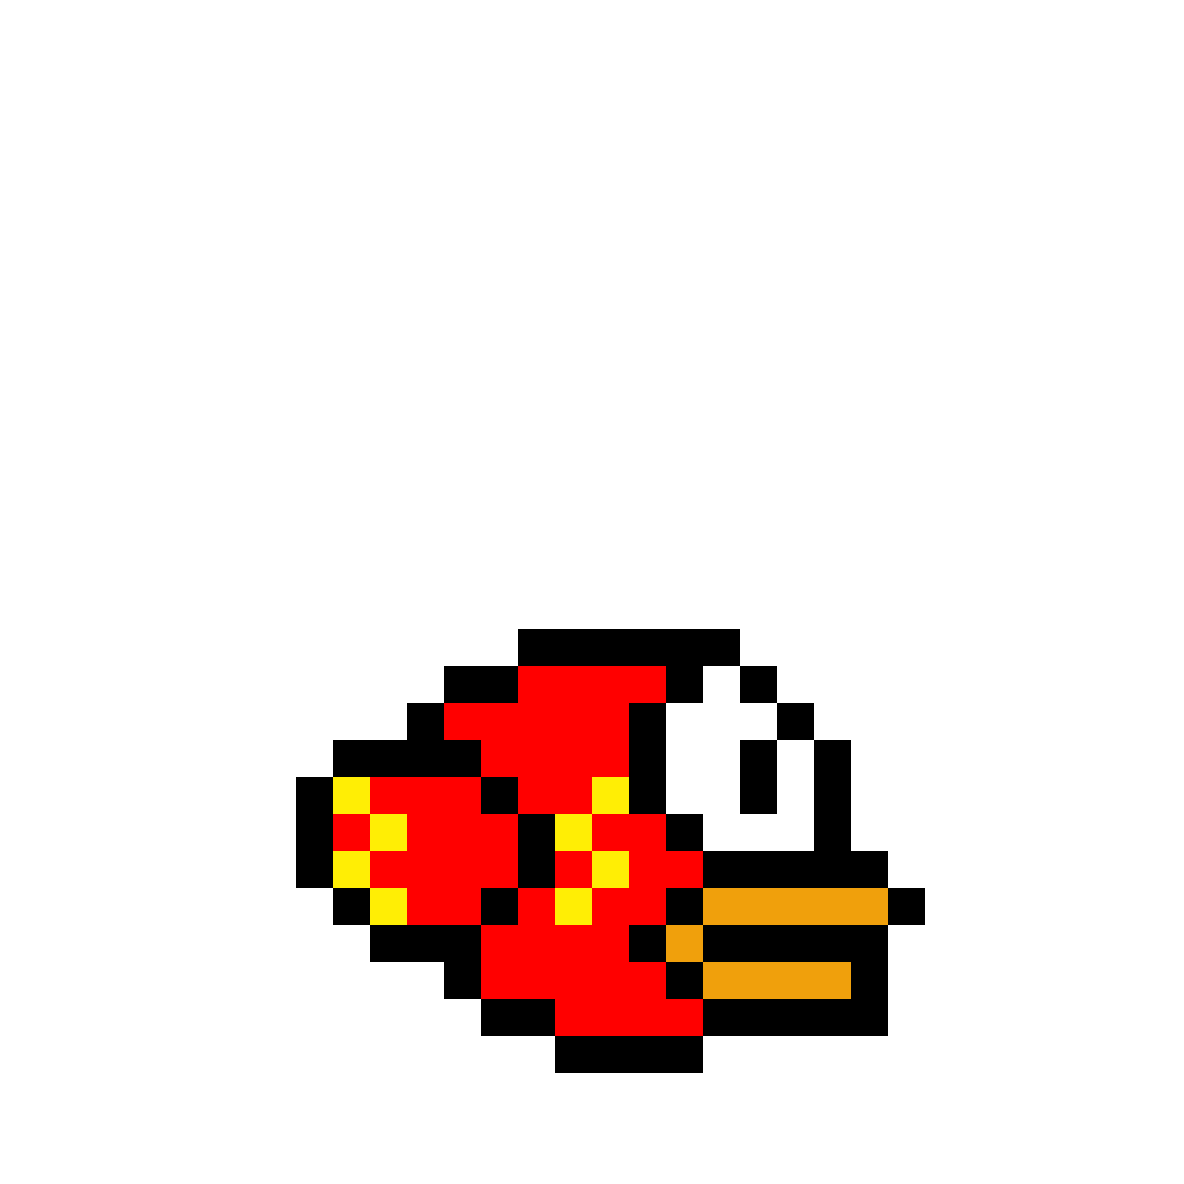 Flappy bird png. Pixilart remember this game